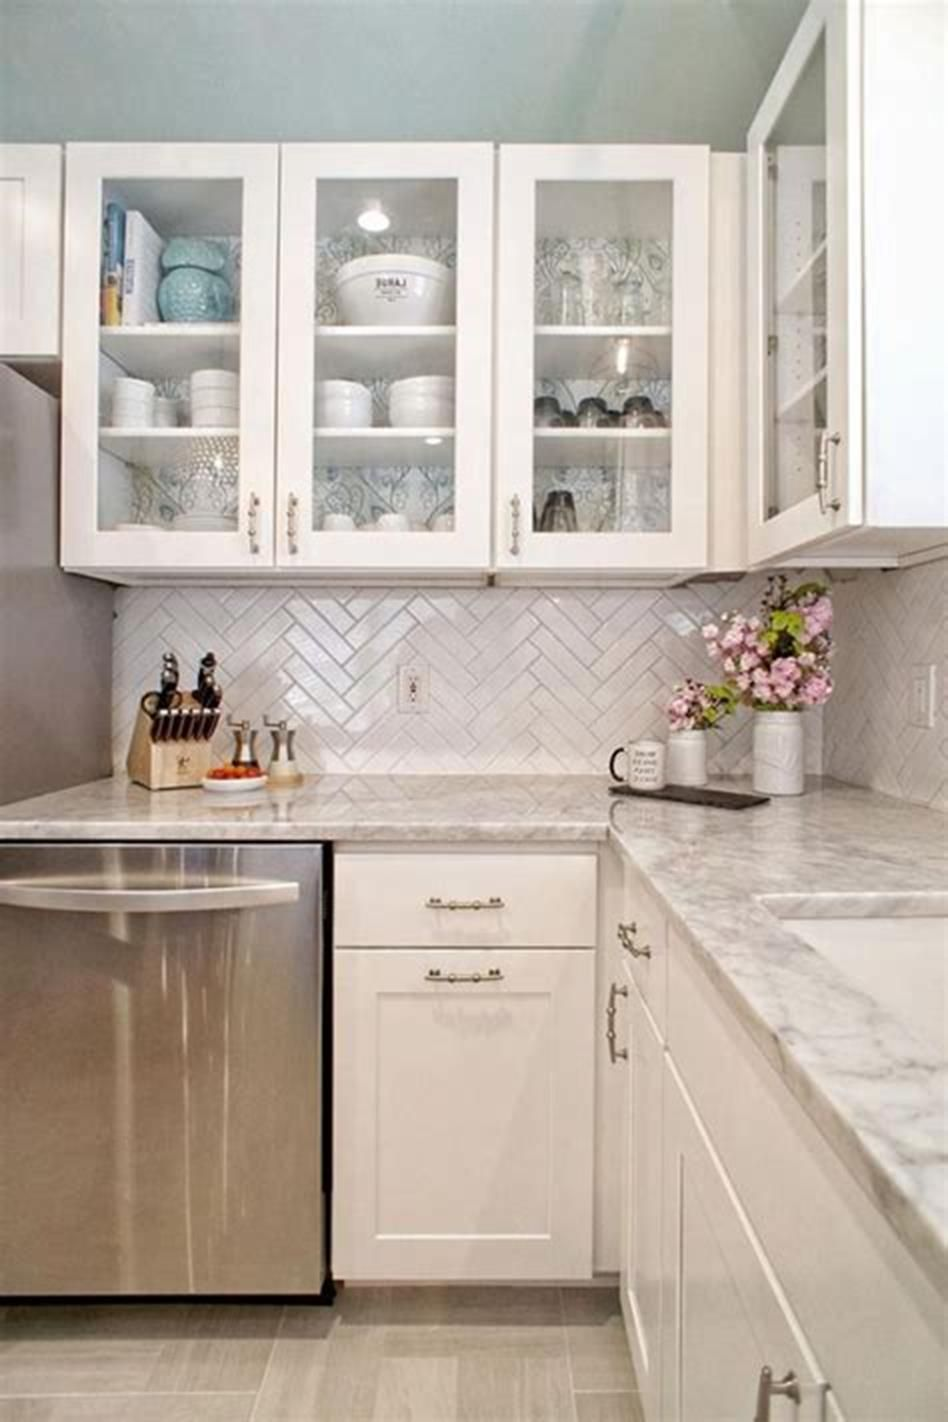 46 Amazing Ideas Kitchen Design Trends 2019 41 Small Modern Kitchens Kitchen Remodel Small Kitchen Renovation